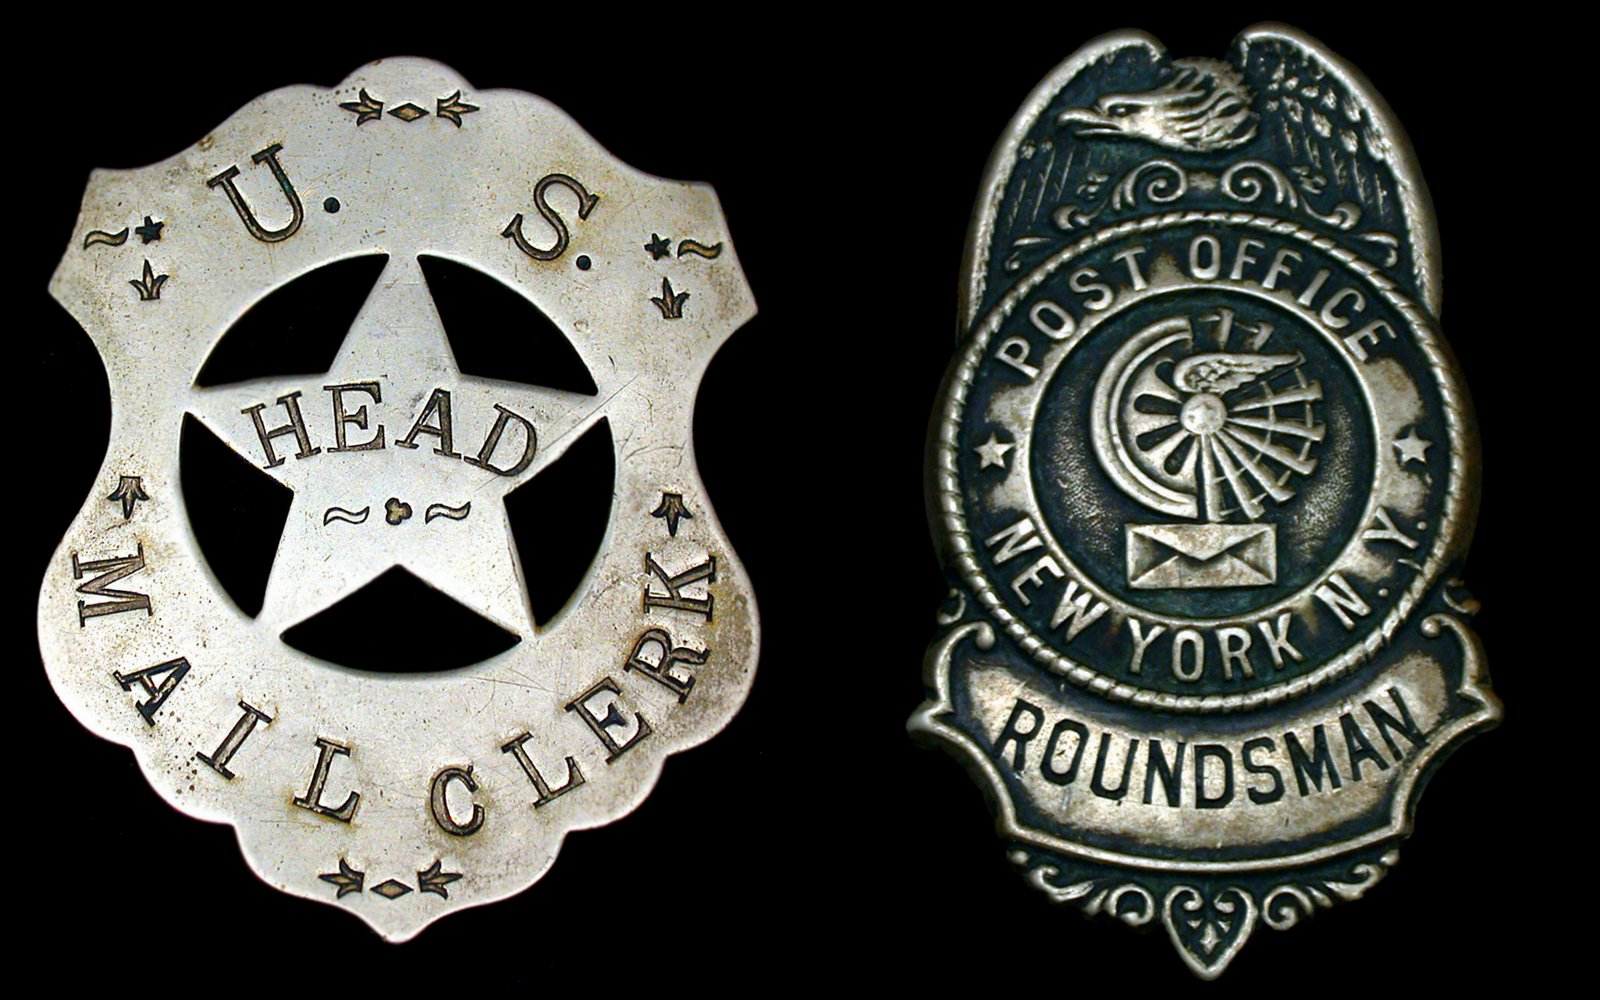 Vintage post office badges - US Head Mail Clerk and New York Roundsman